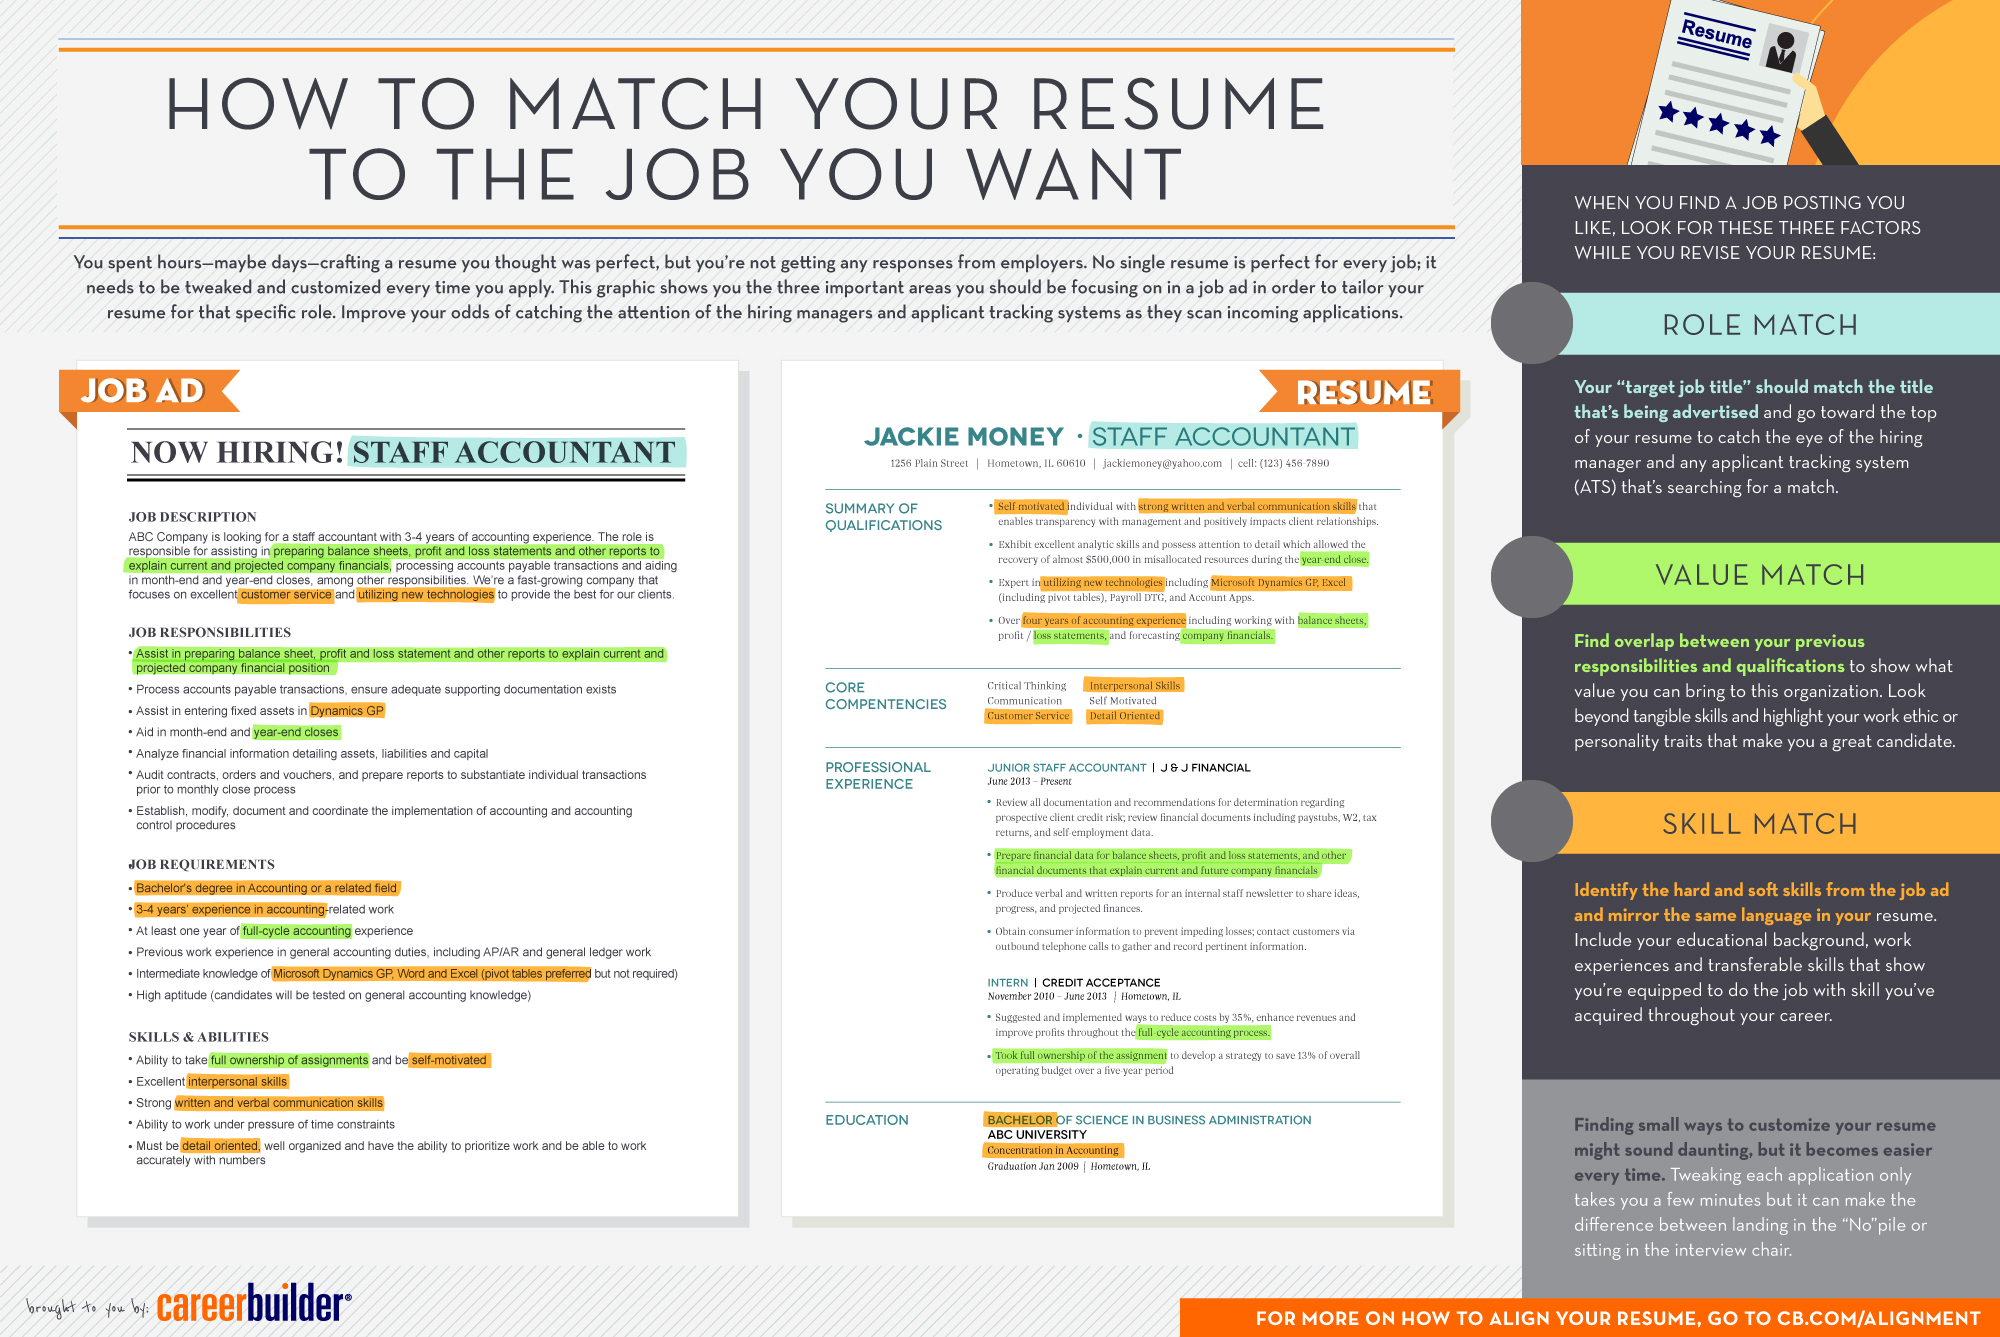 Resume Writing Tips Careerbuilder Best Words To Include And Avoid In Your Resume How Tailoring Your Resume Is Like Ordering Starbucks